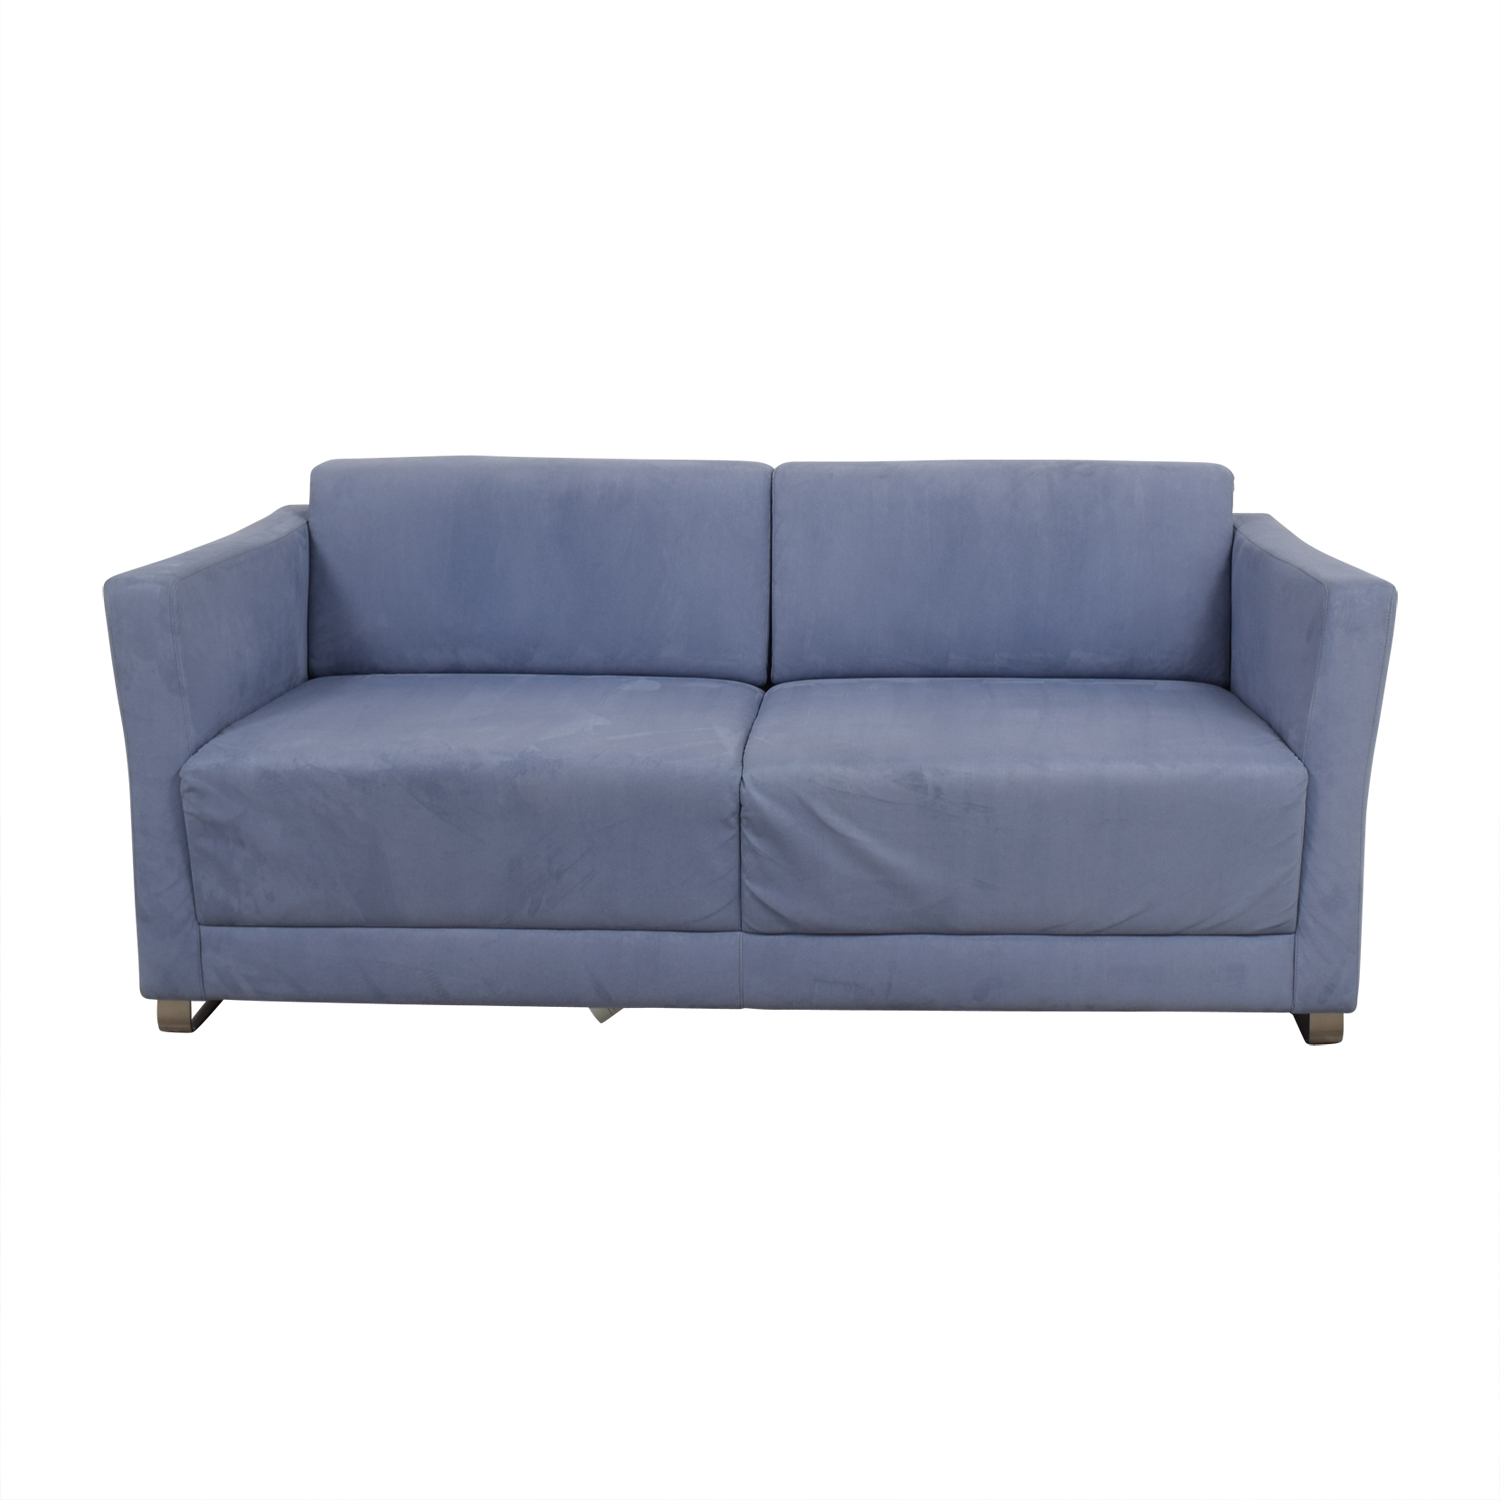 Shop Bernhardt Milix Light Blue Sofa Bernhardtt ...